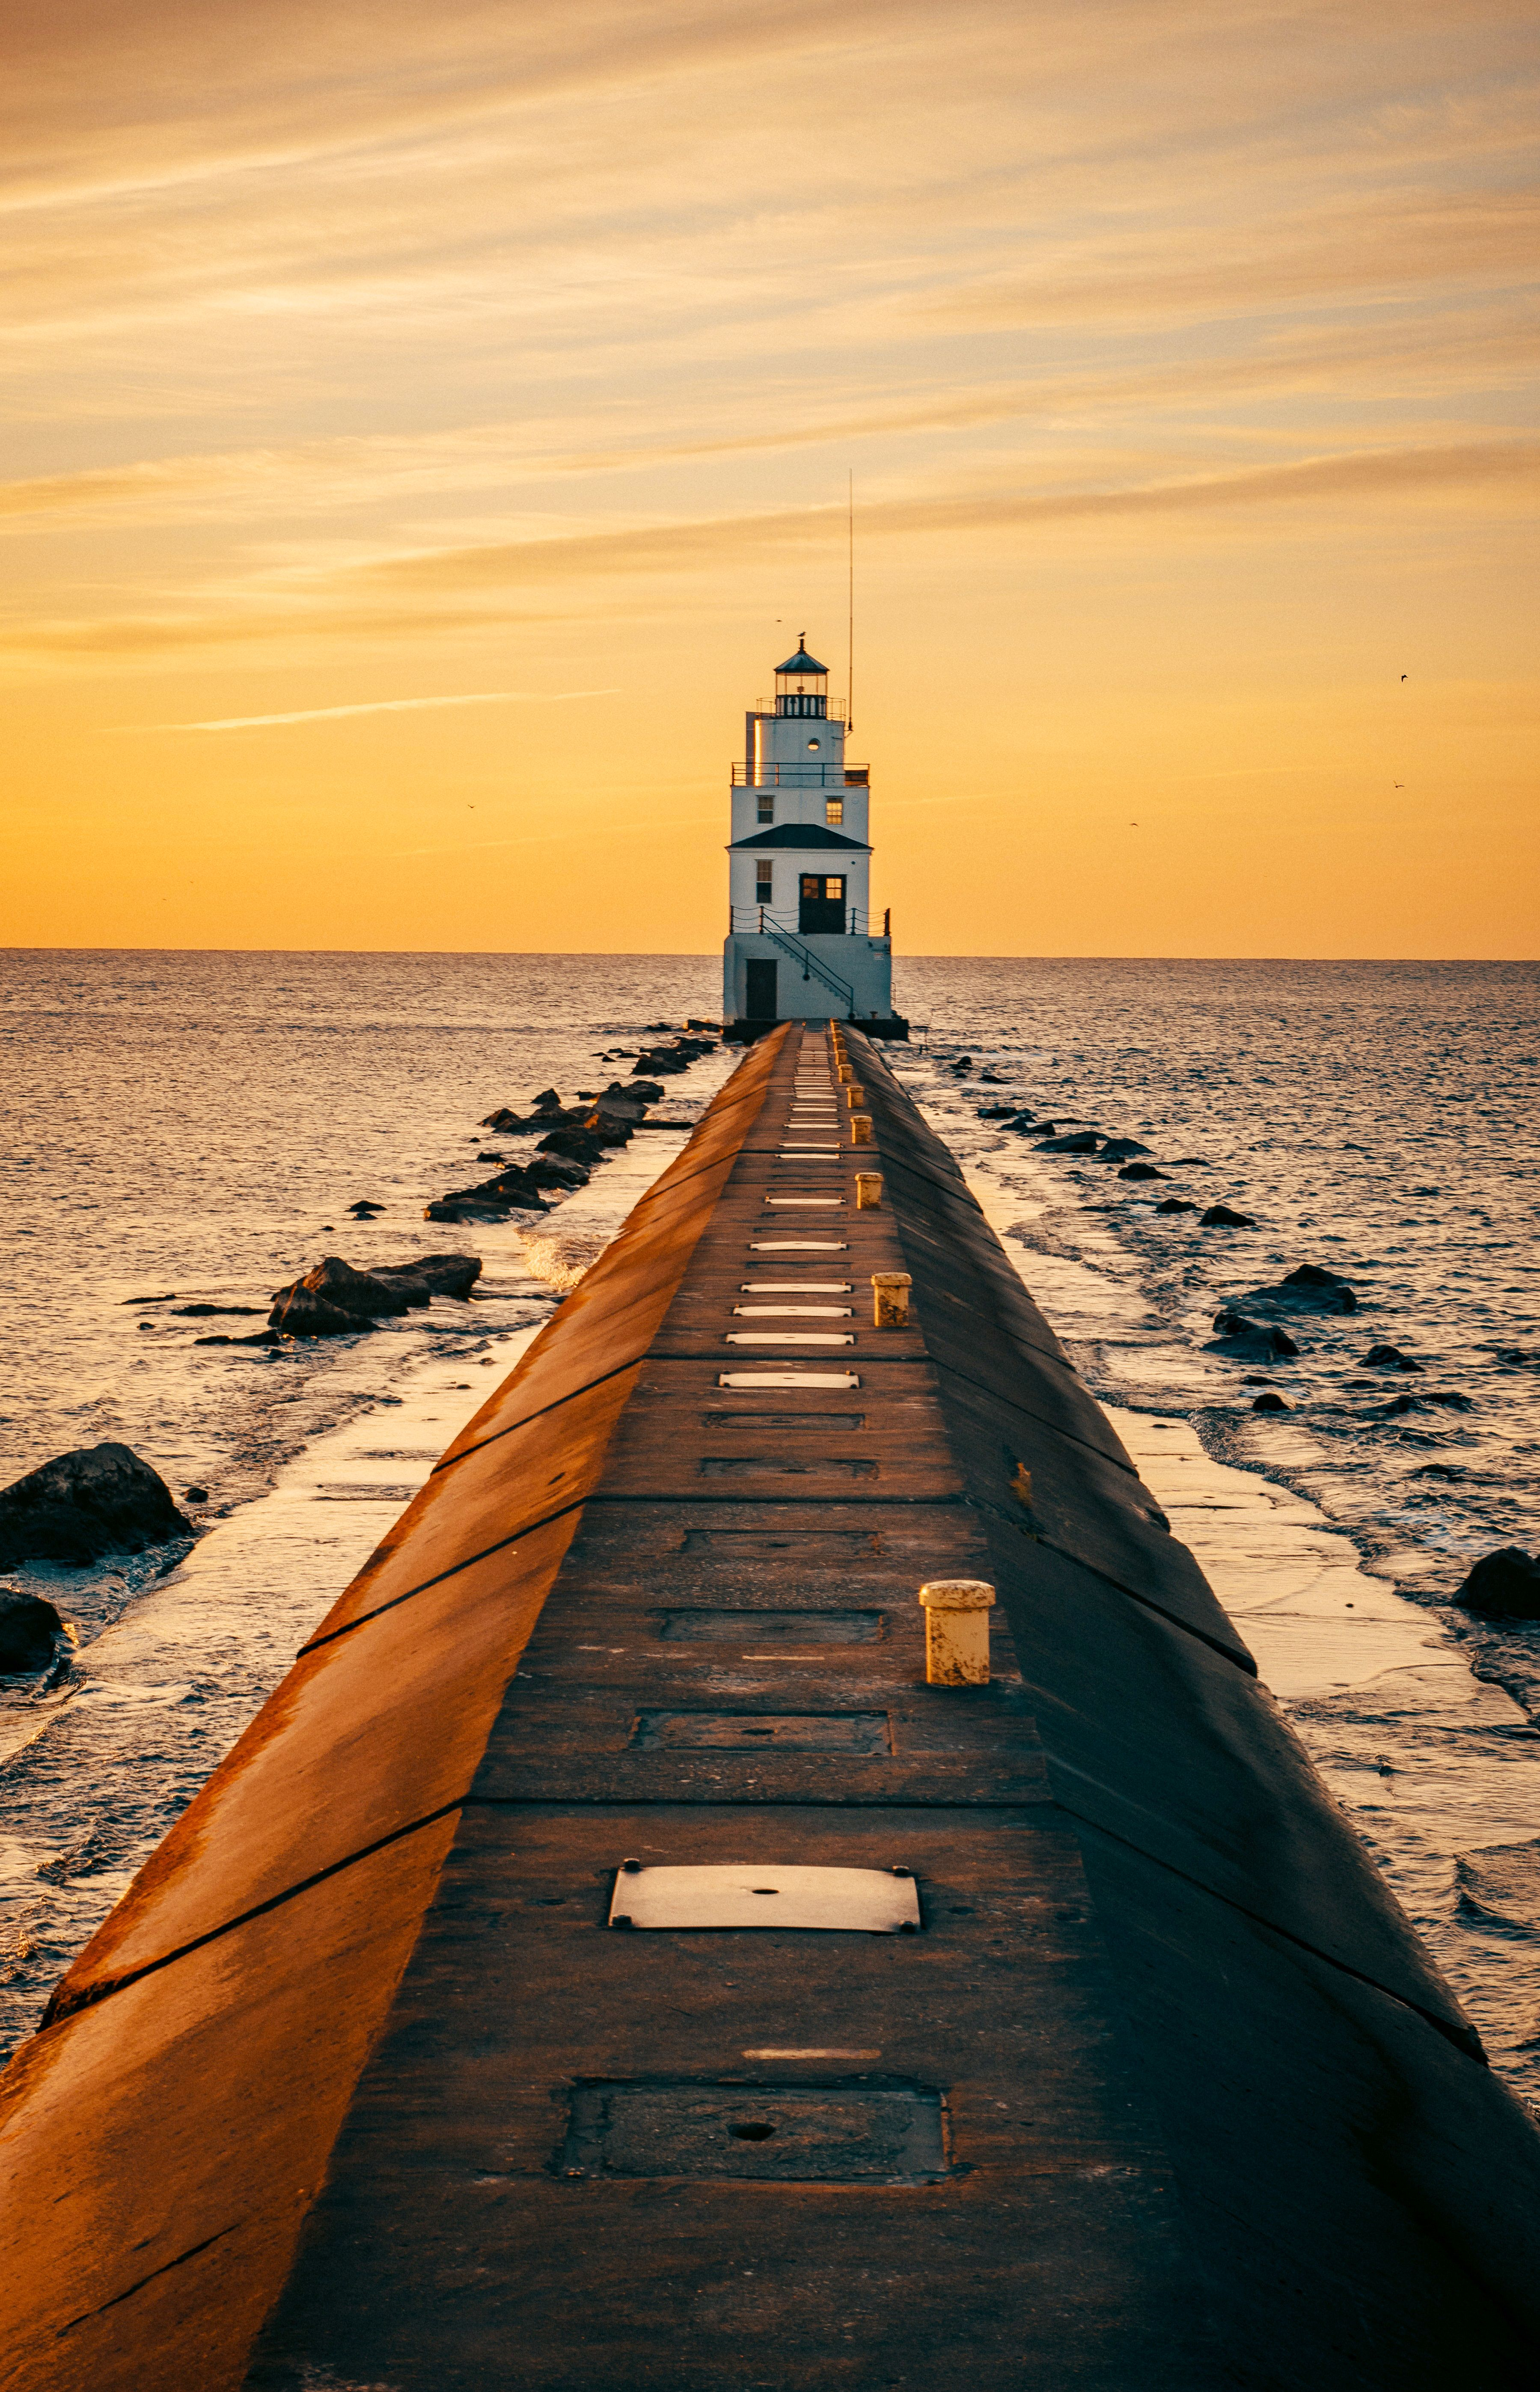 Evening by the sea. Lighthouse. in 2020 Mobile wallpaper